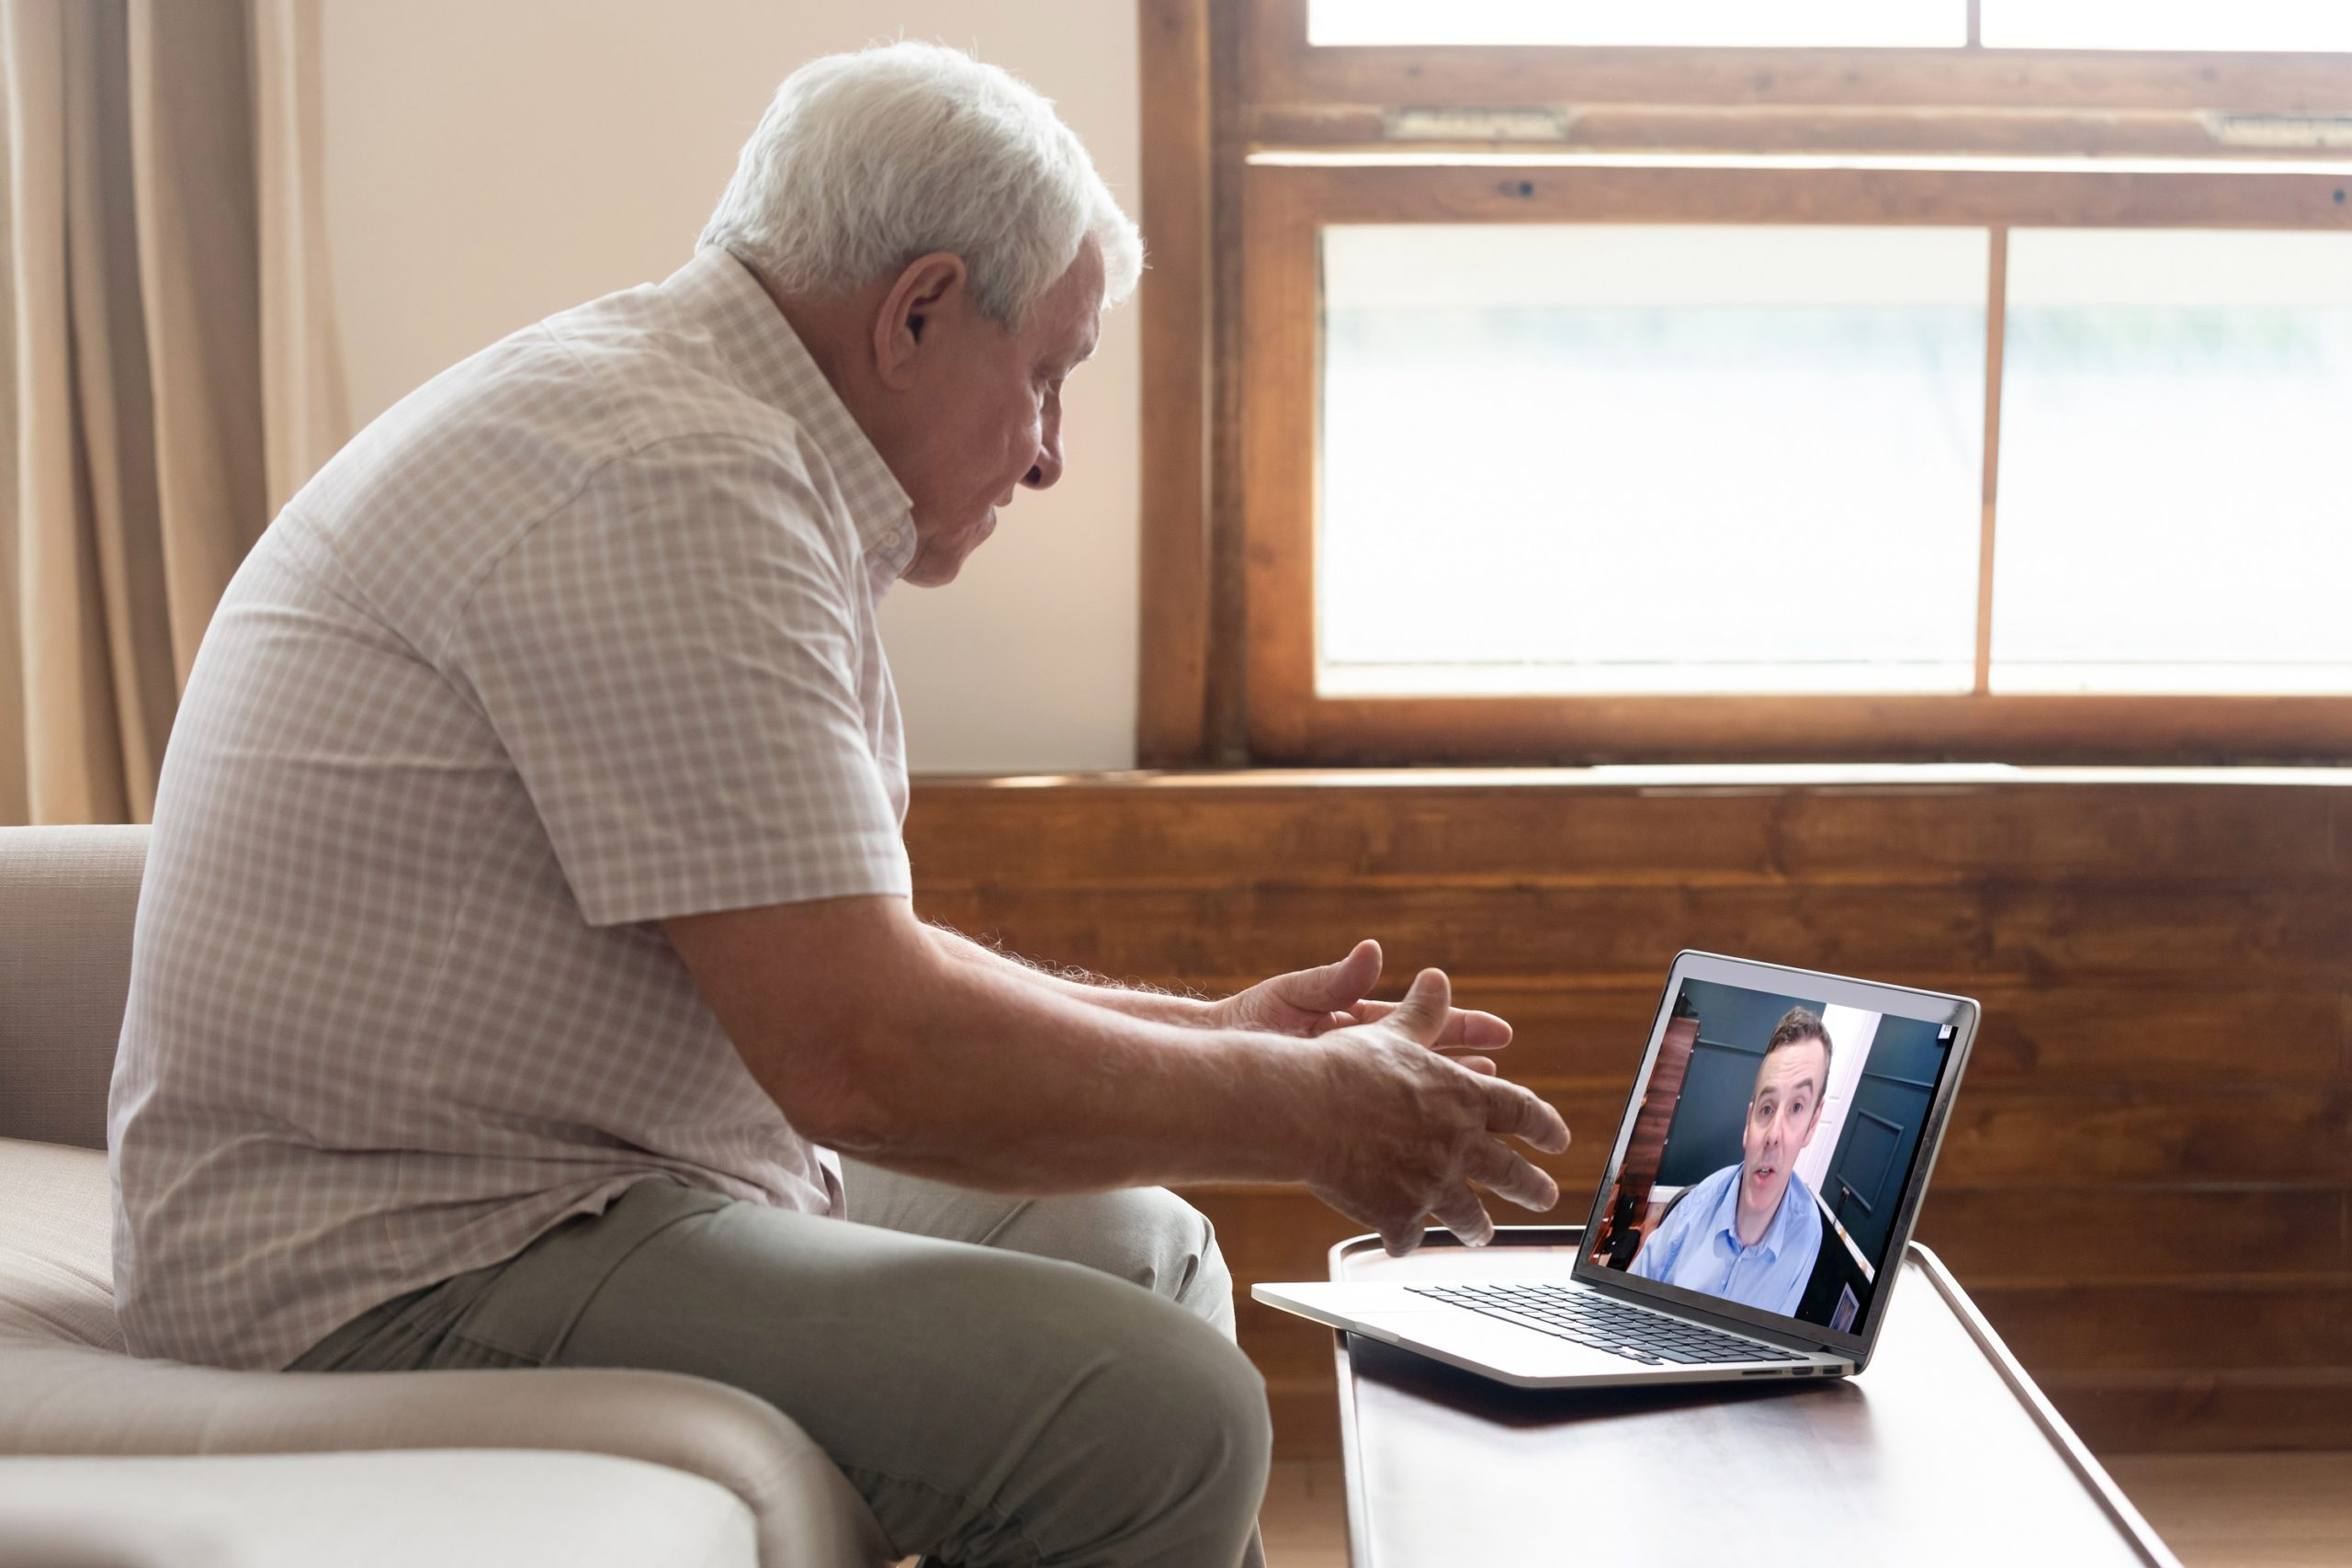 Specsavers Bandon launches video consultation service open to all